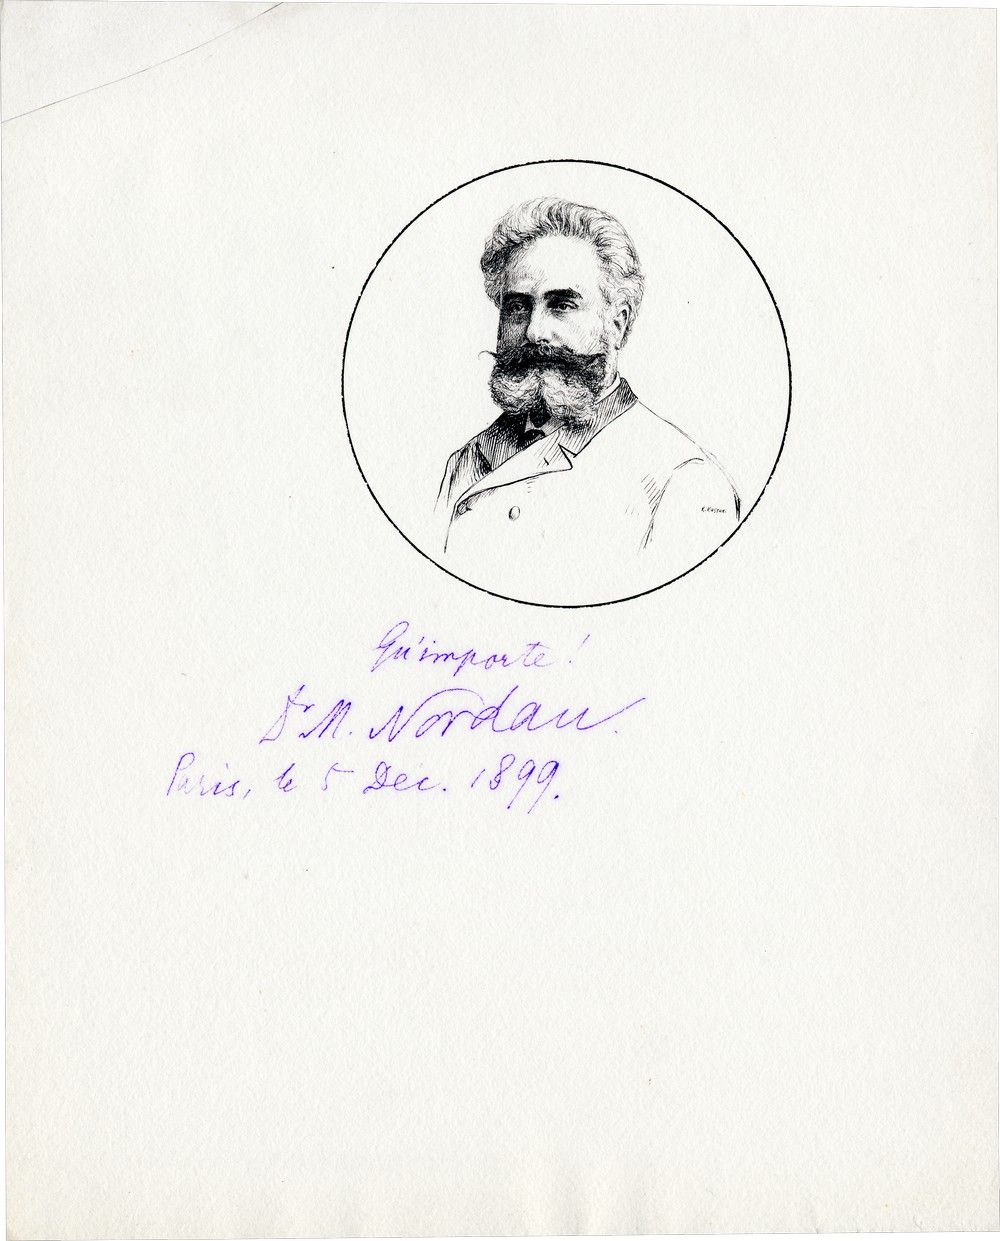 Signed Etching of Max Nordau